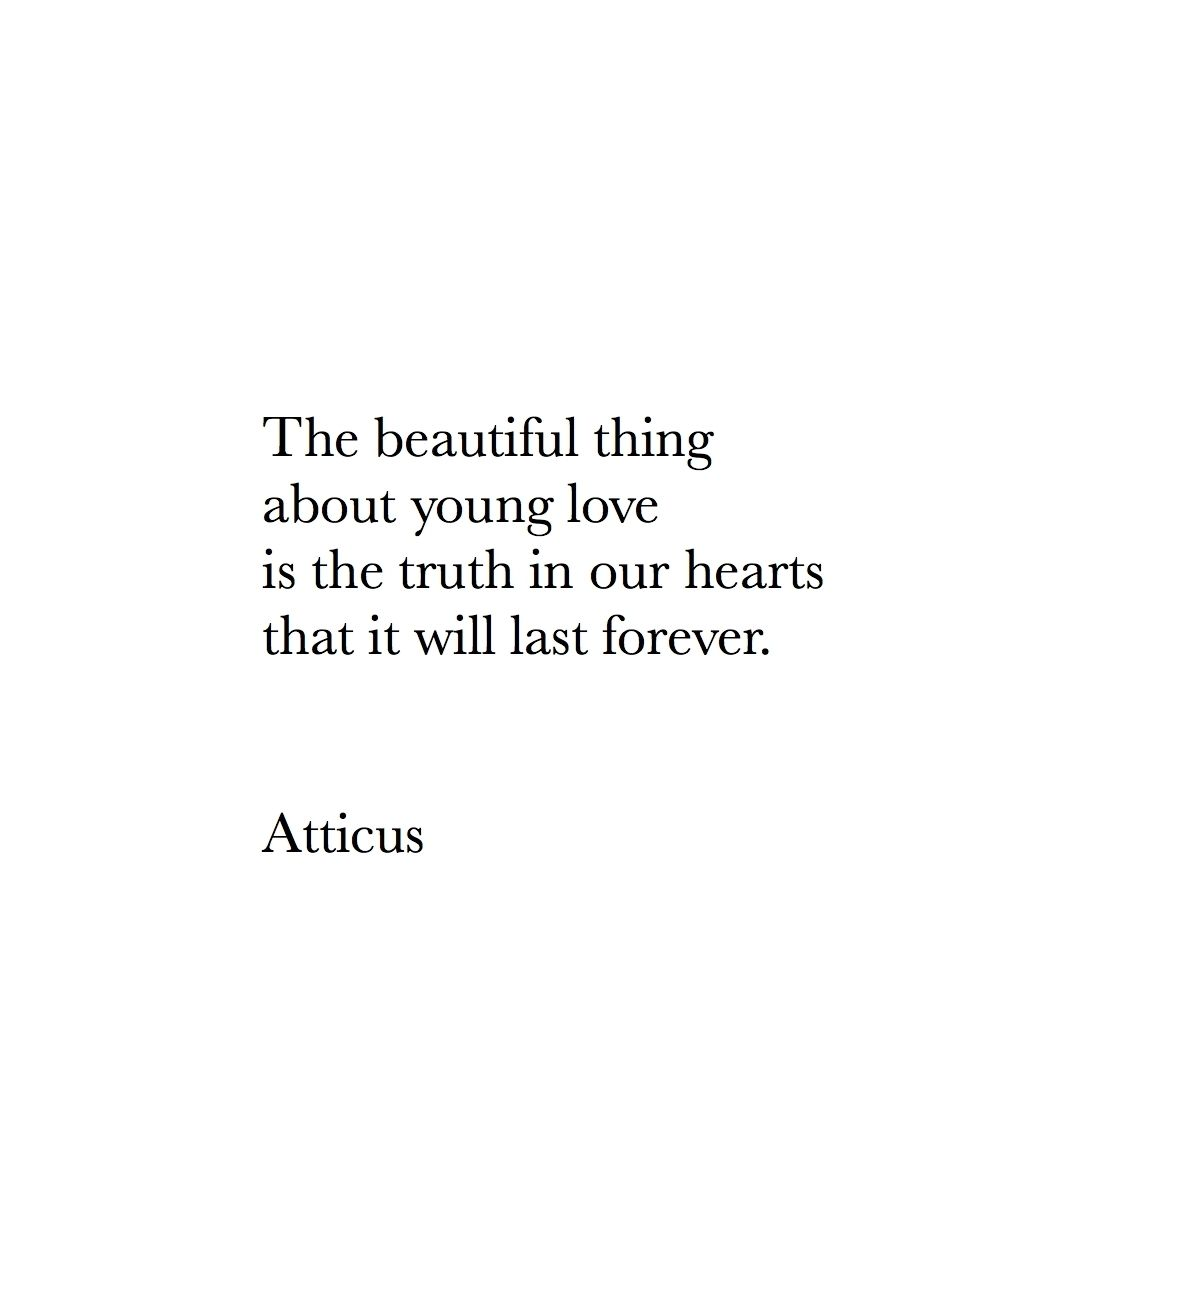 Young Love Quotes Extraordinary Young Love' #atticuspoetry #atticus #love  Quotes  Pinterest